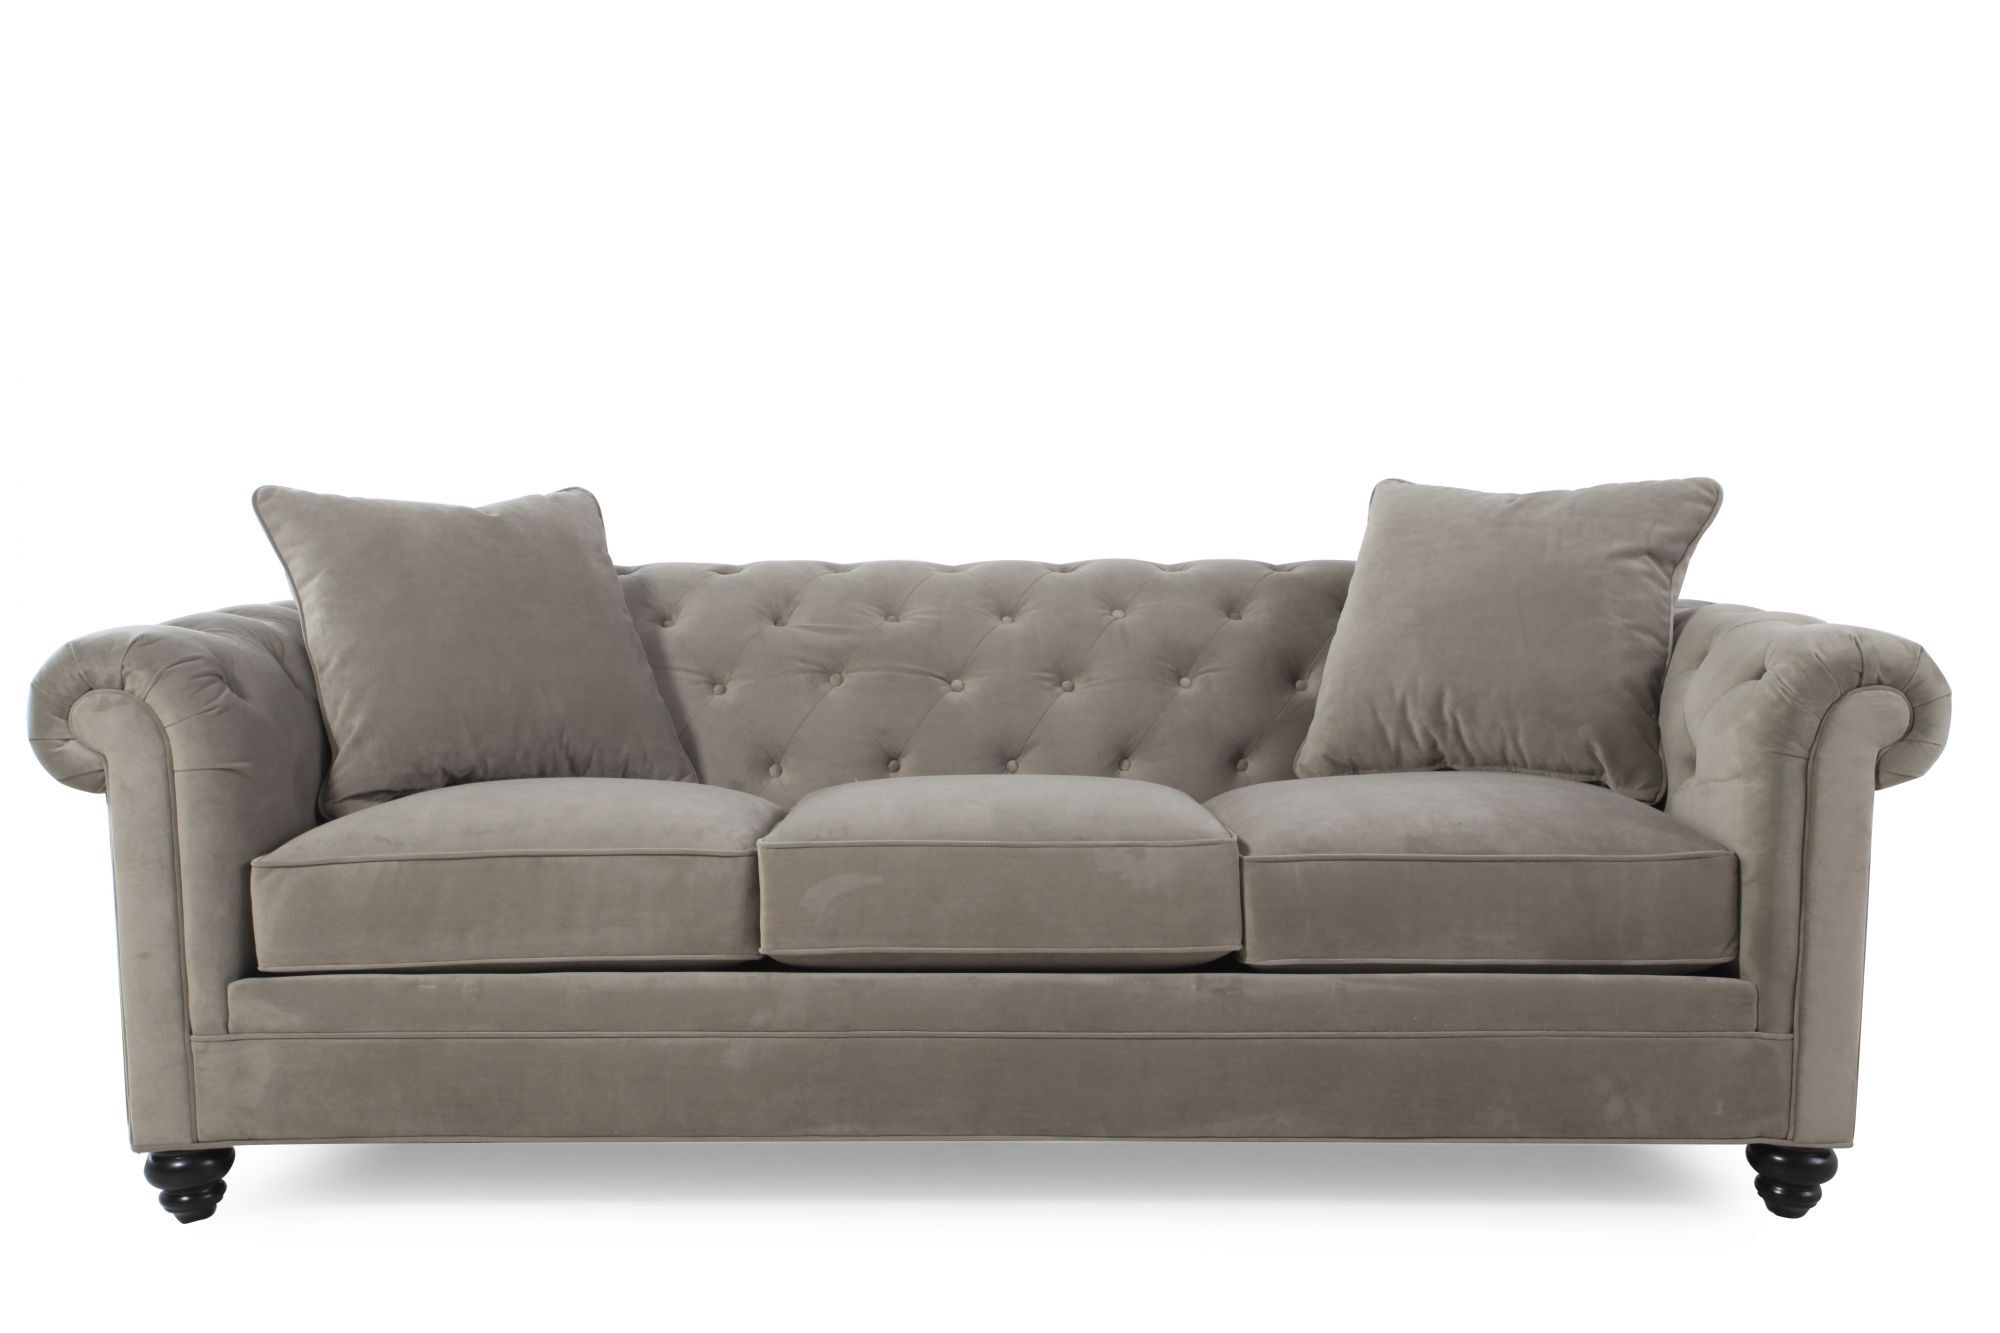 Merveilleux Jonathan Louis Bella Storm Sofa Mathis Brothers Furniture